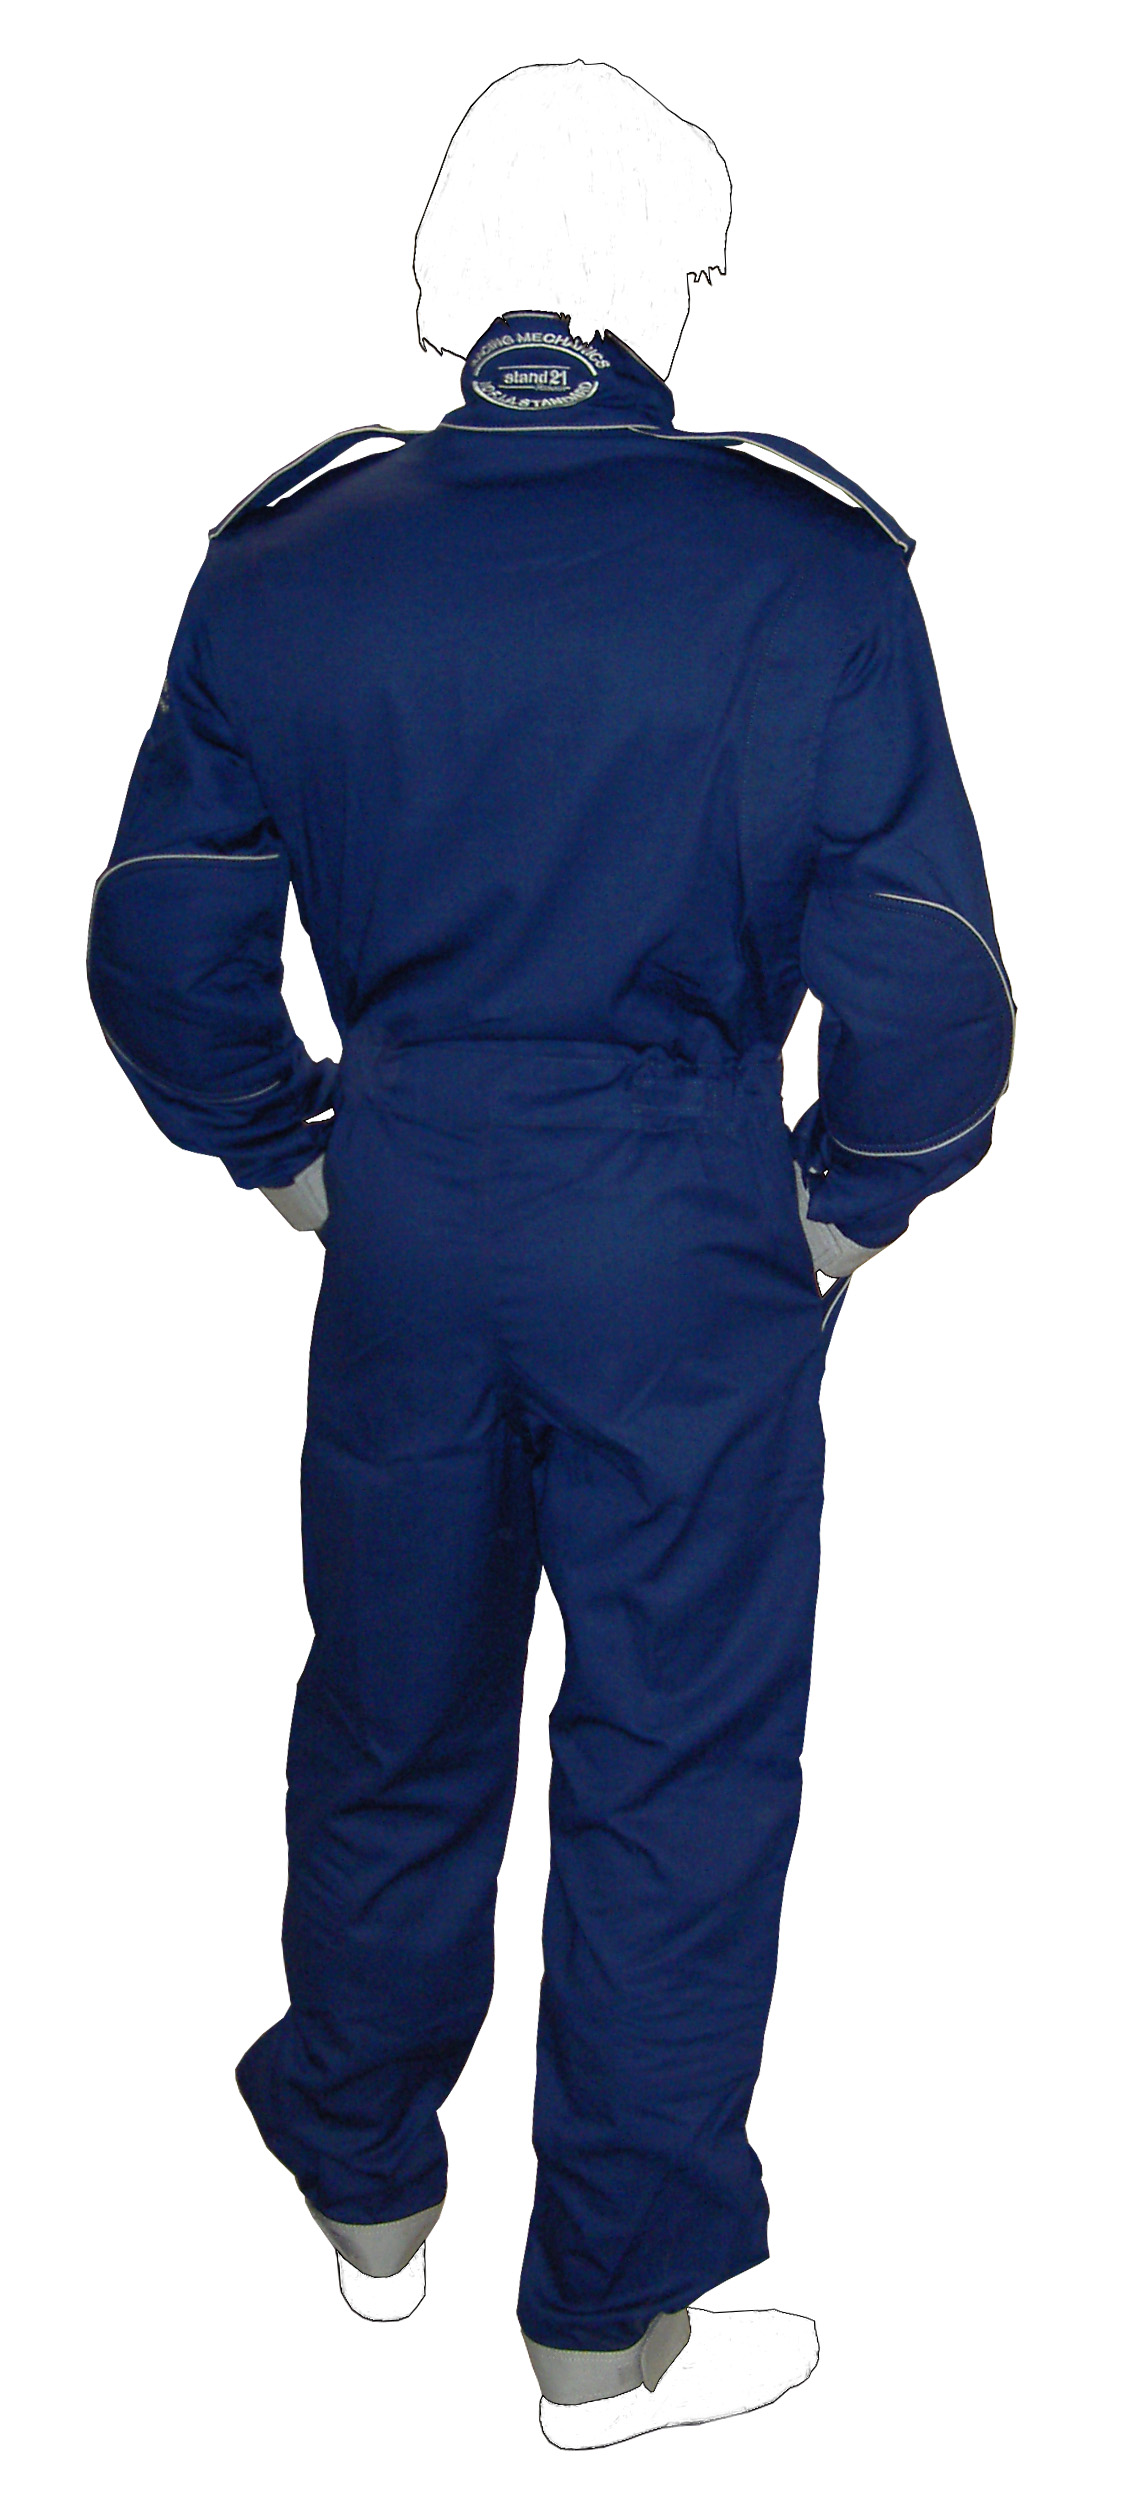 Stock Navy blue with grey piping MC2 technical staff suit